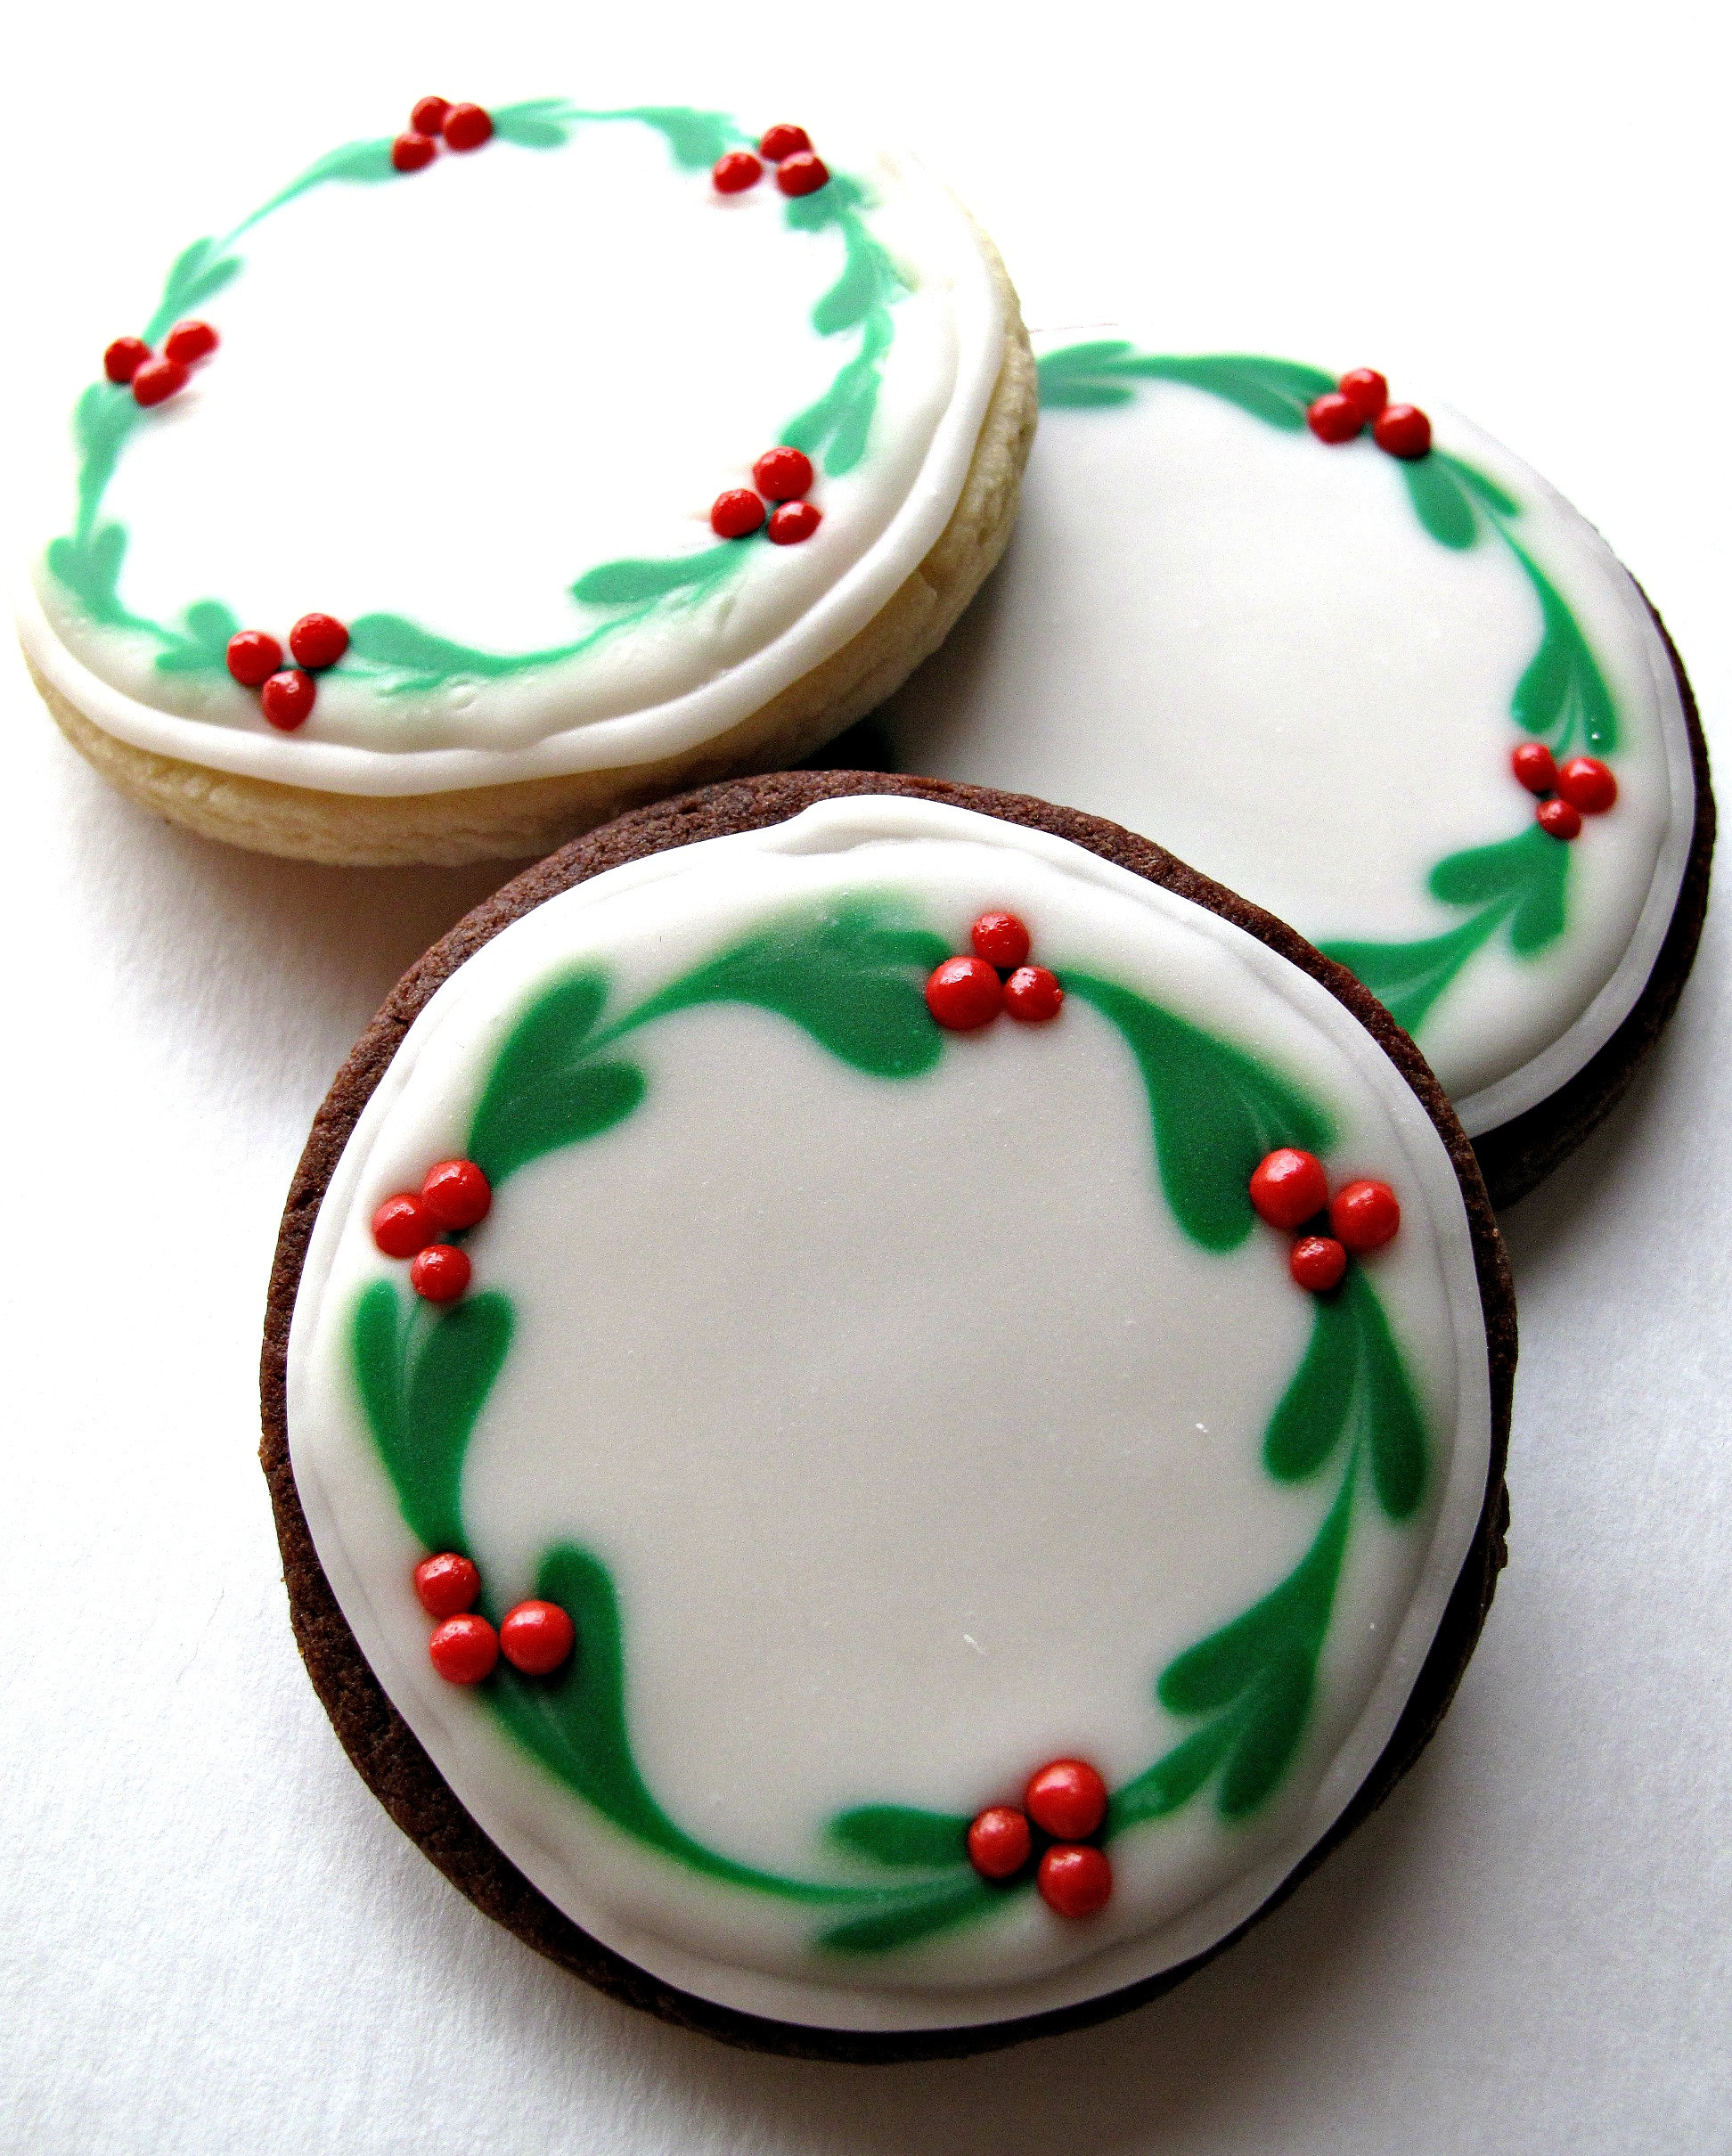 Christmas Cookie Icing  Chocolate Covered Oreos and Iced Christmas Sugar Cookies